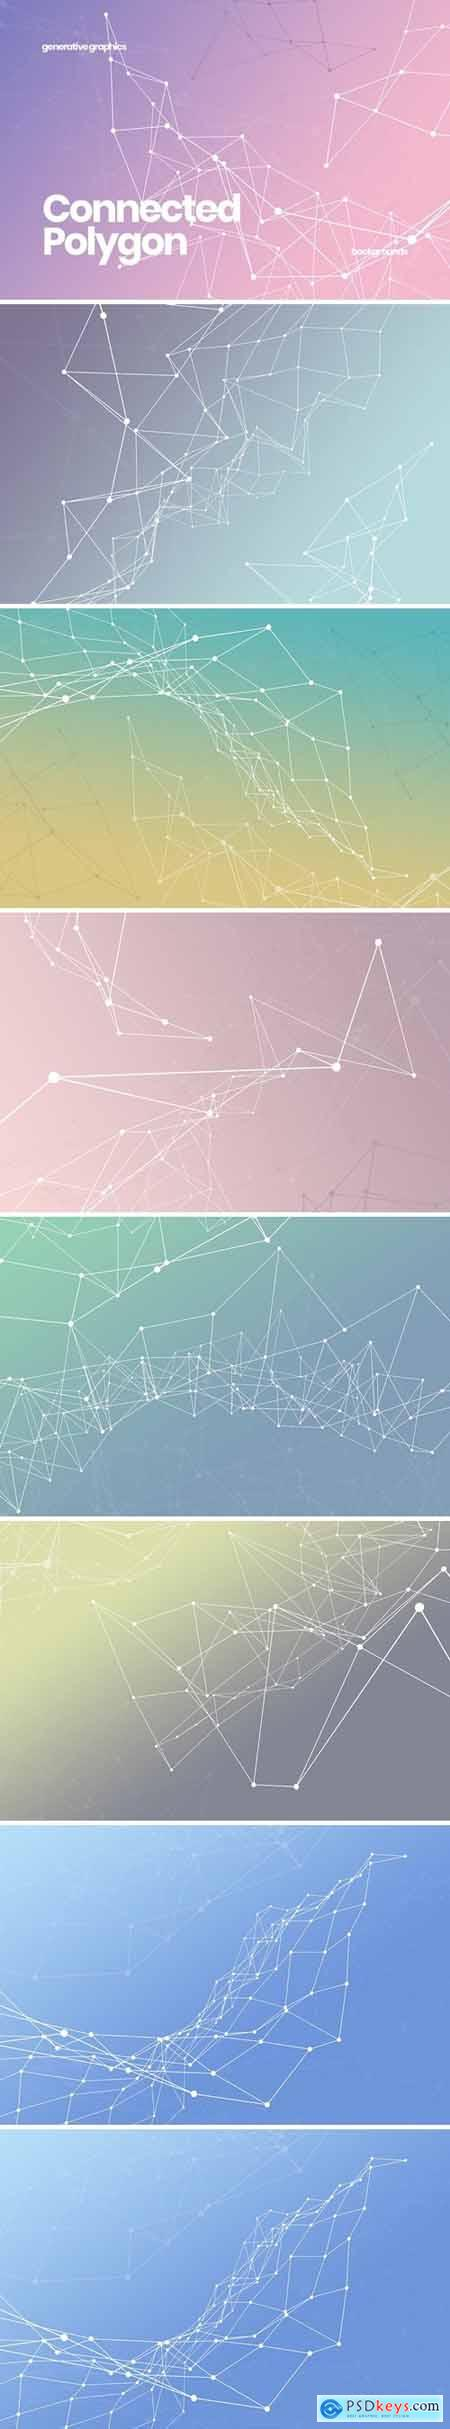 Connected Polygon Backgrounds